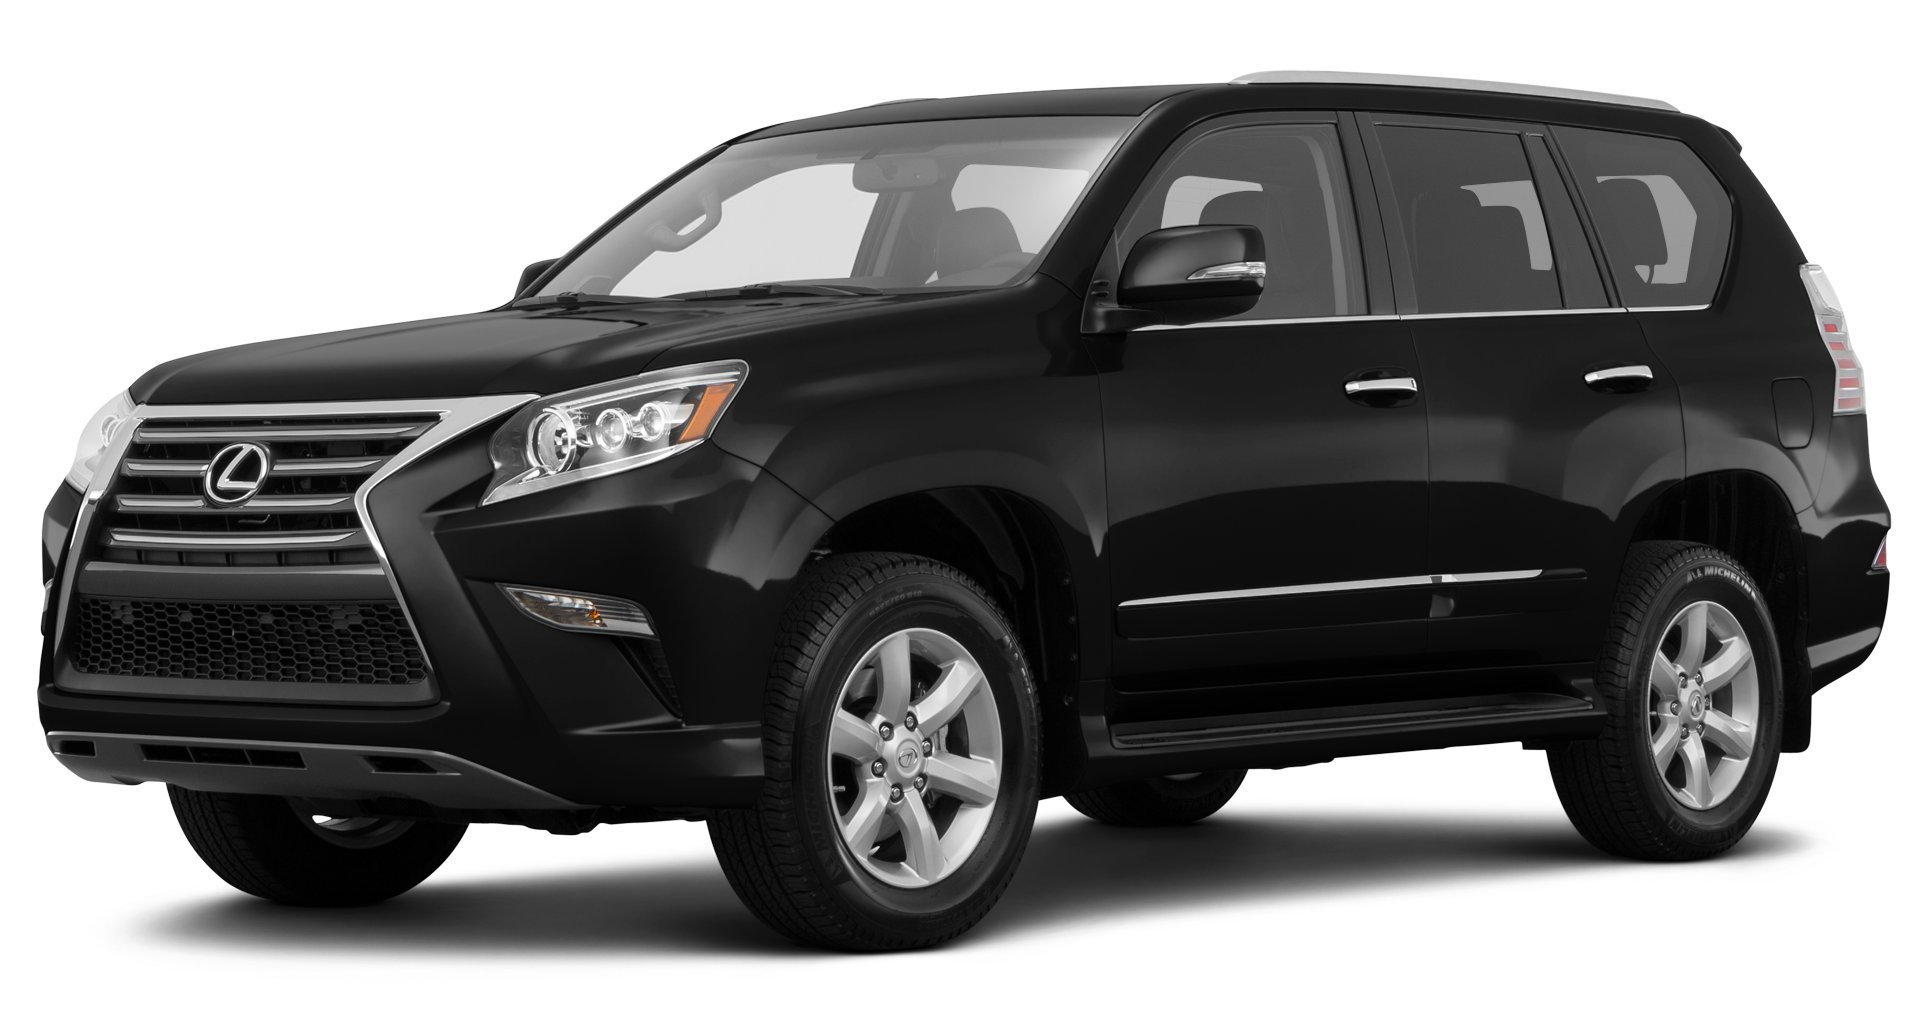 Amazon.com: 2016 Lexus GX460 Reviews, Images, and Specs: Vehicles